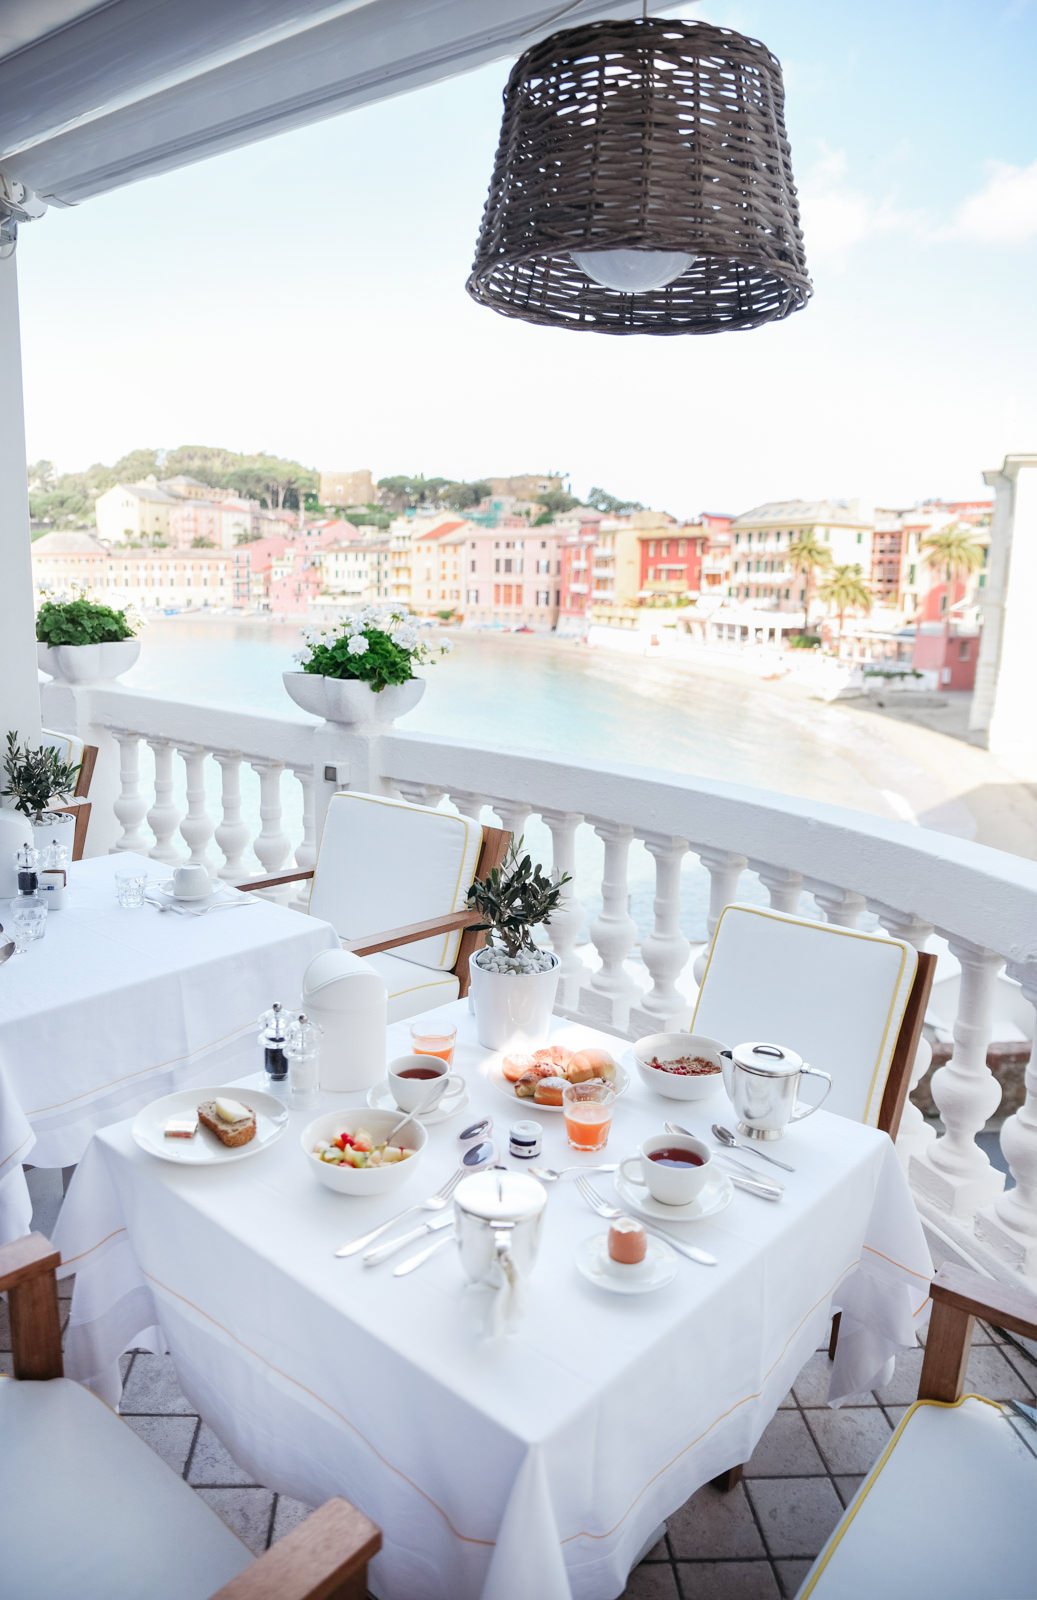 Blog-Mode-And-The-City-Lifestyle-Italie-Sestri-Levante-Cinque-Terre-2